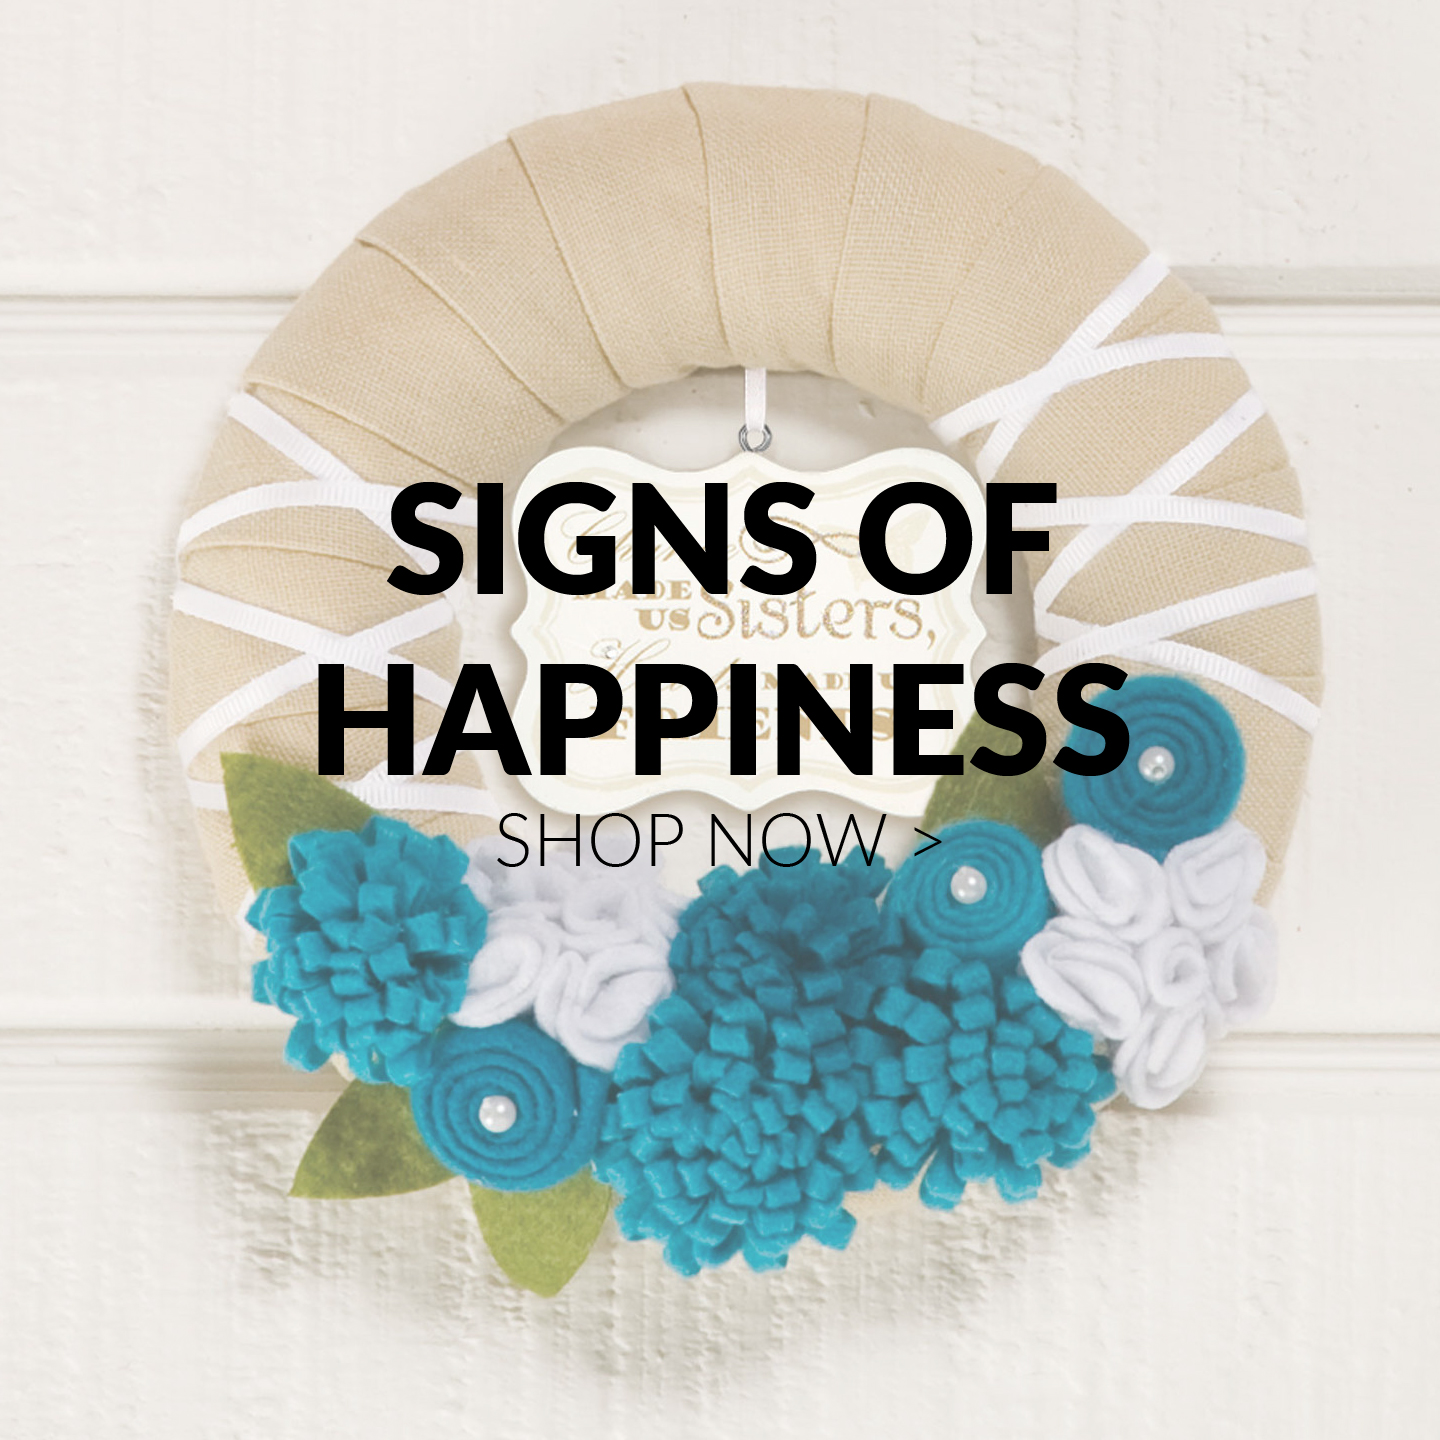 Signs of Happiness